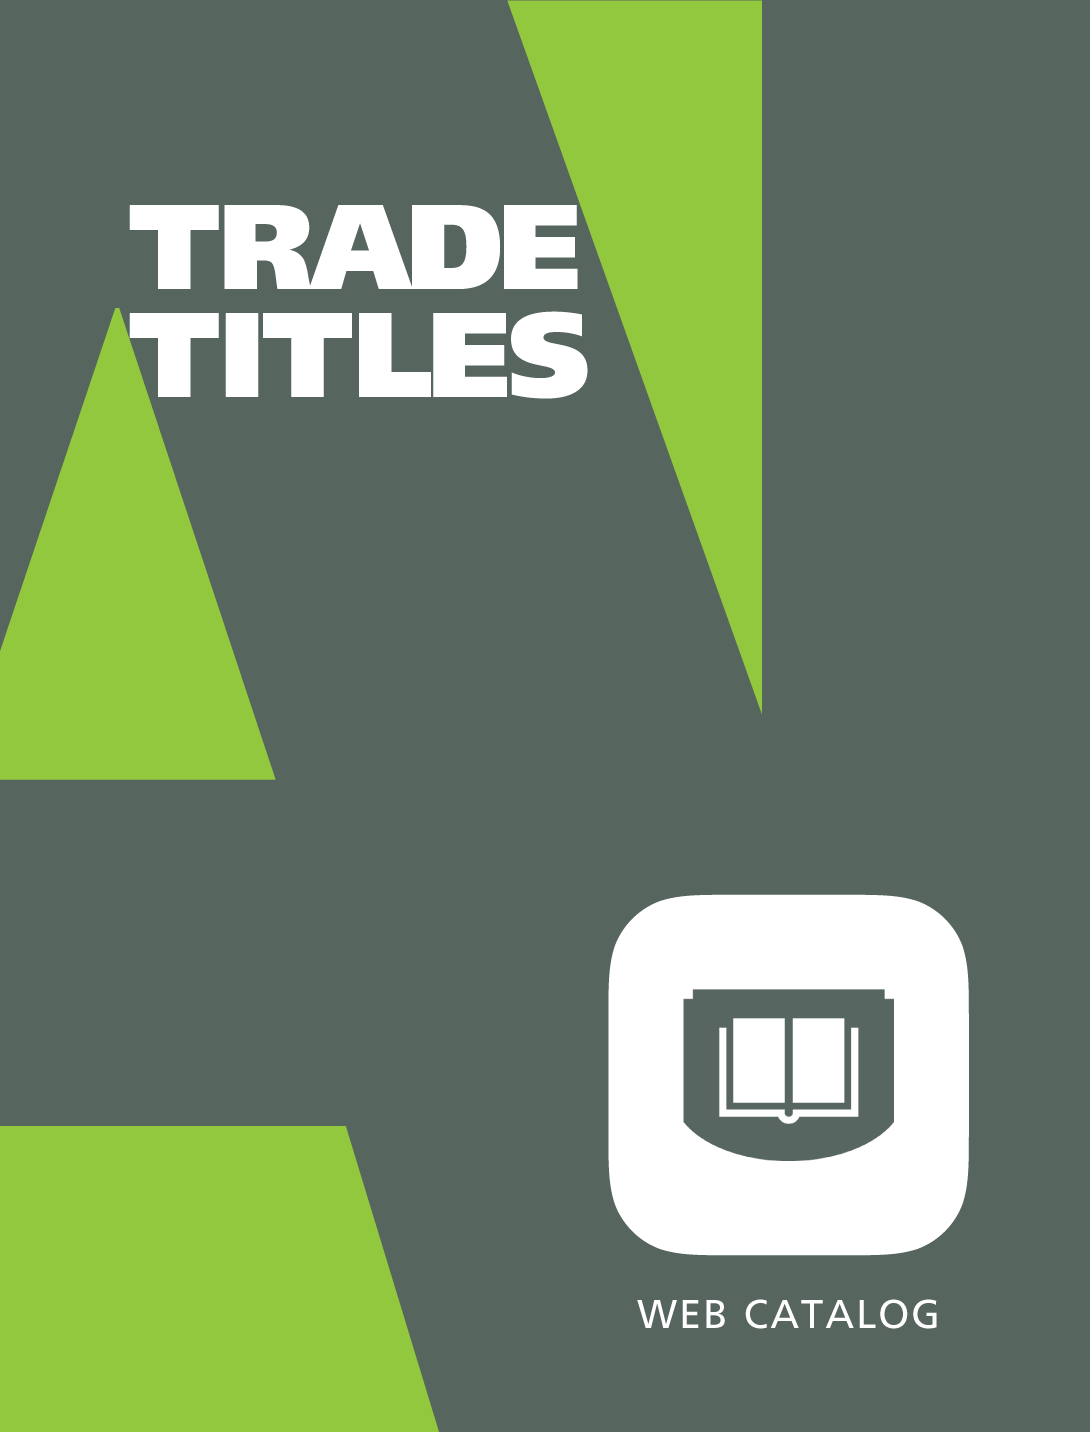 Trade Titles web catalog